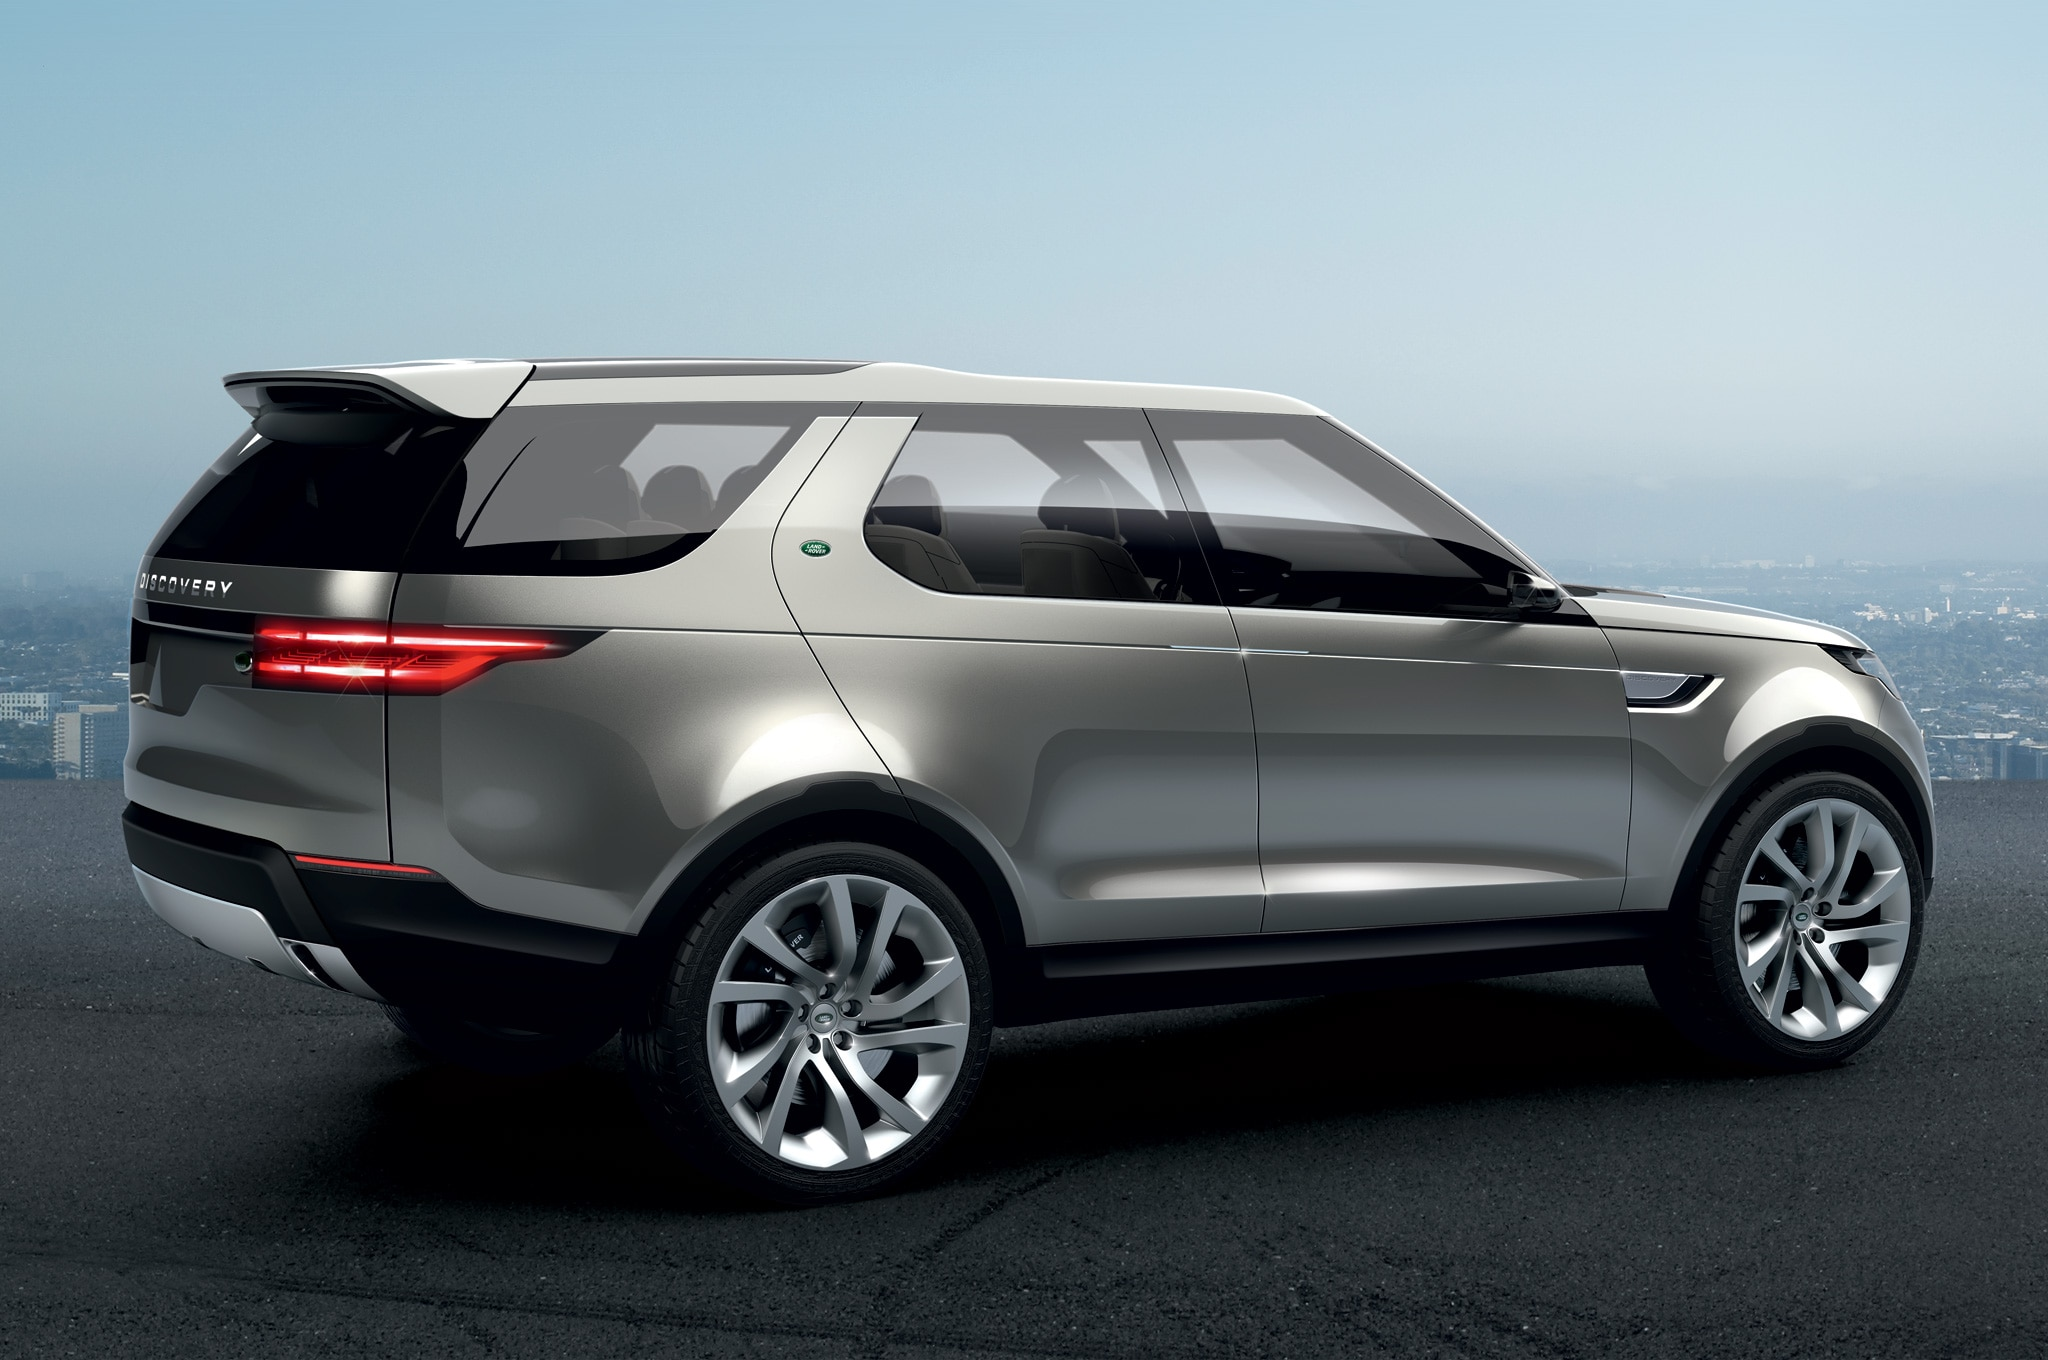 Land Rover Discovery Vision Concept rear side view